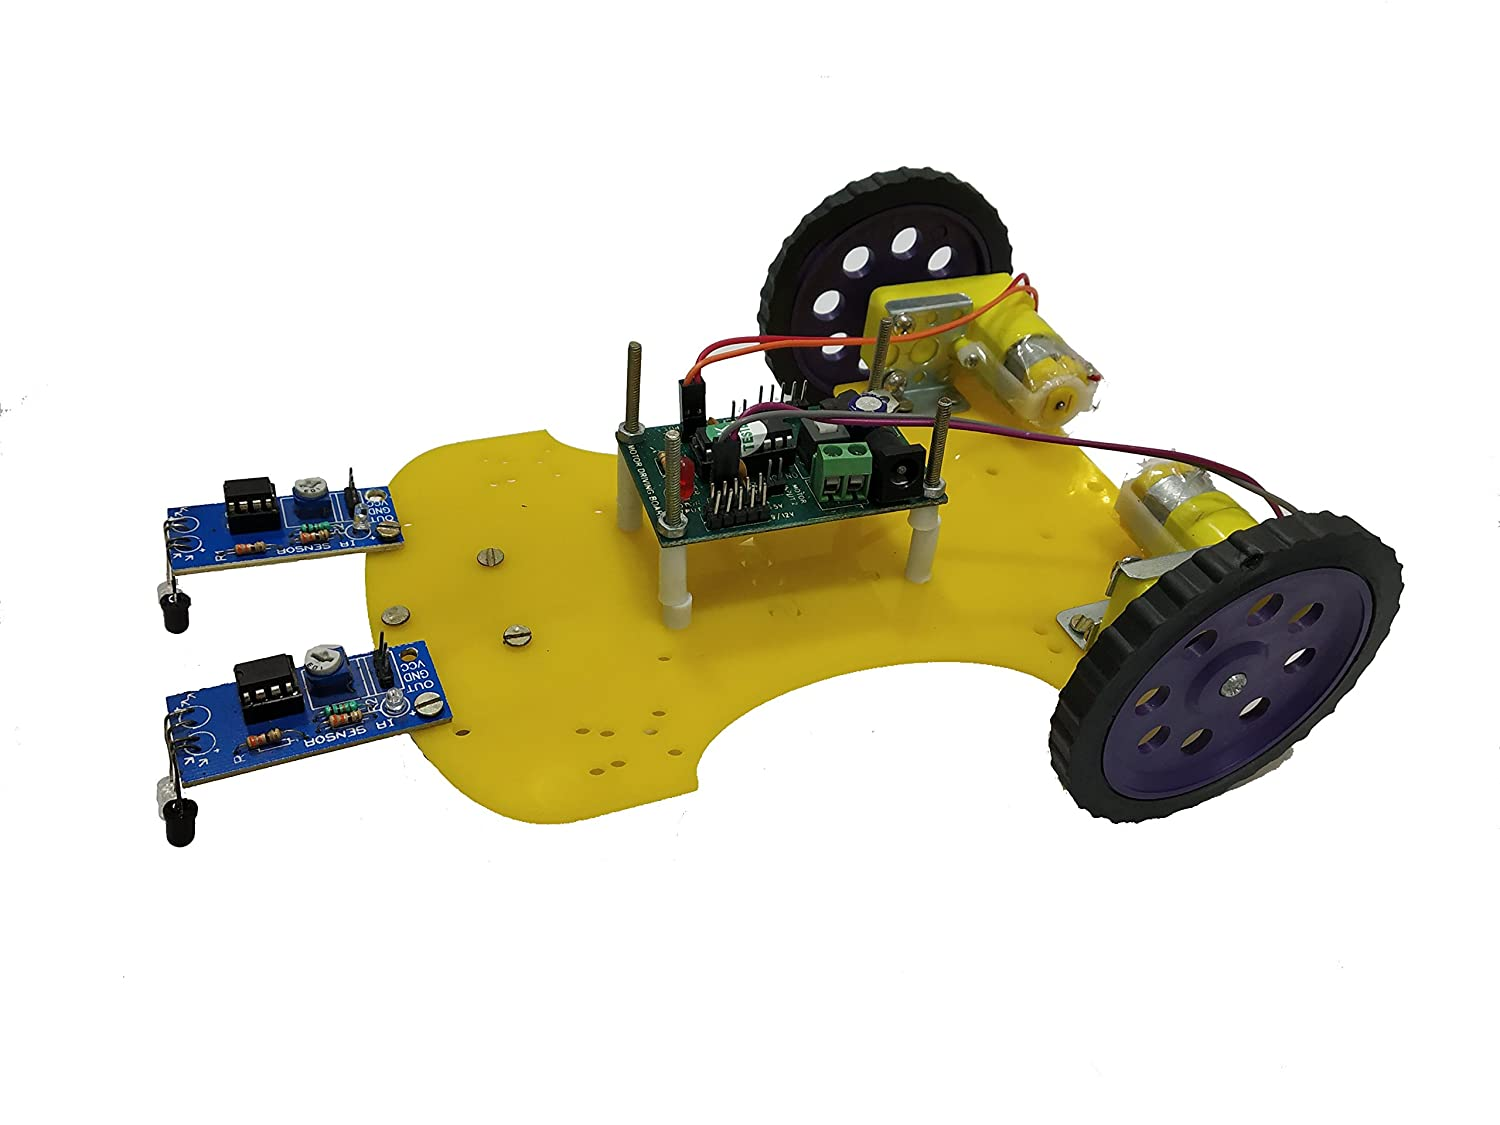 Embeddinator Pcb And Copper Line Follower Robotic Diy Kit Without Simple Following Robot Microcontroller Make Robots In Blue